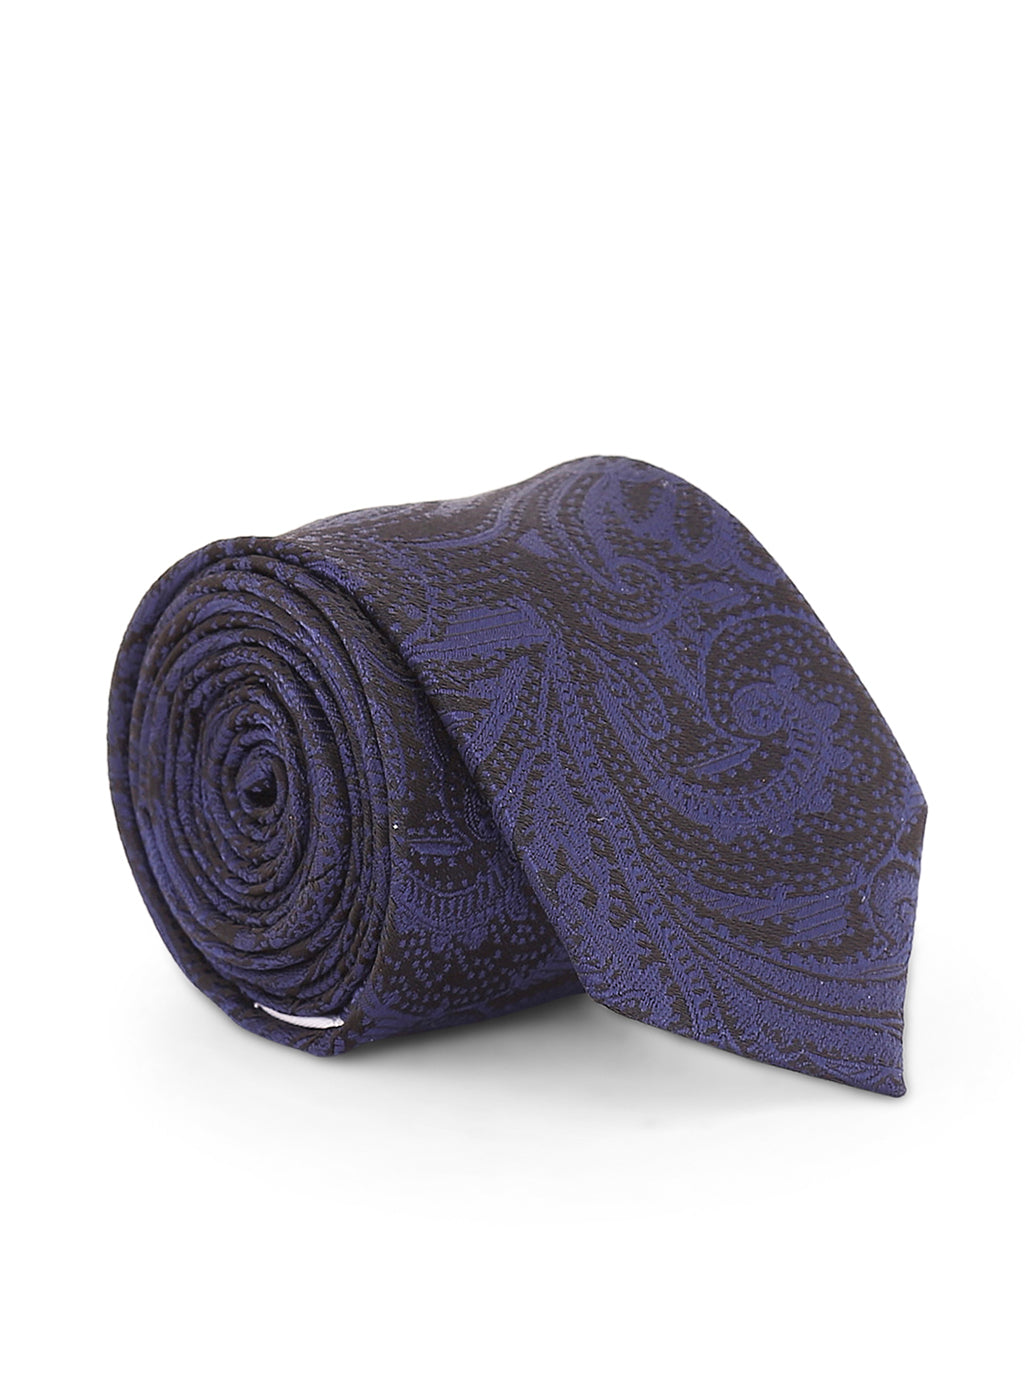 Zido  Tie for Men TJQS138